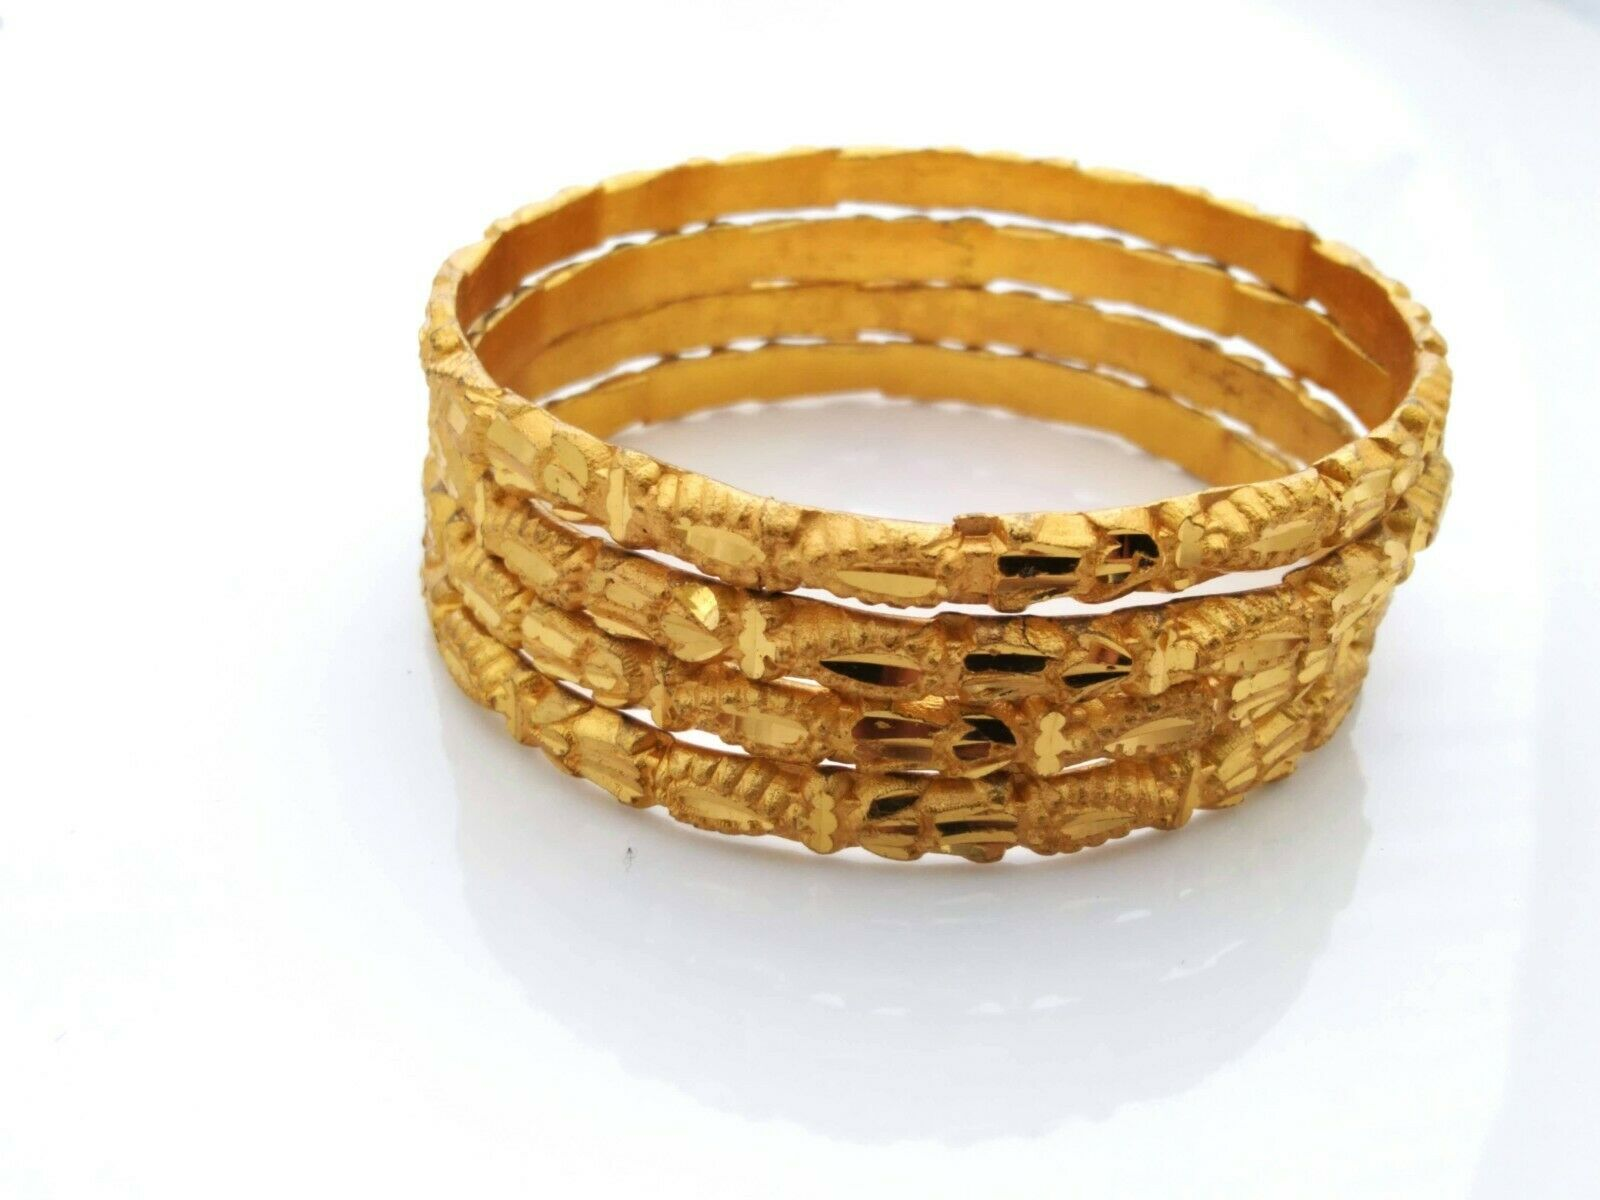 22K Gold Plated Thick 4 Ps Bangle High Quality Indian Fashion Daily Wear Jewelry